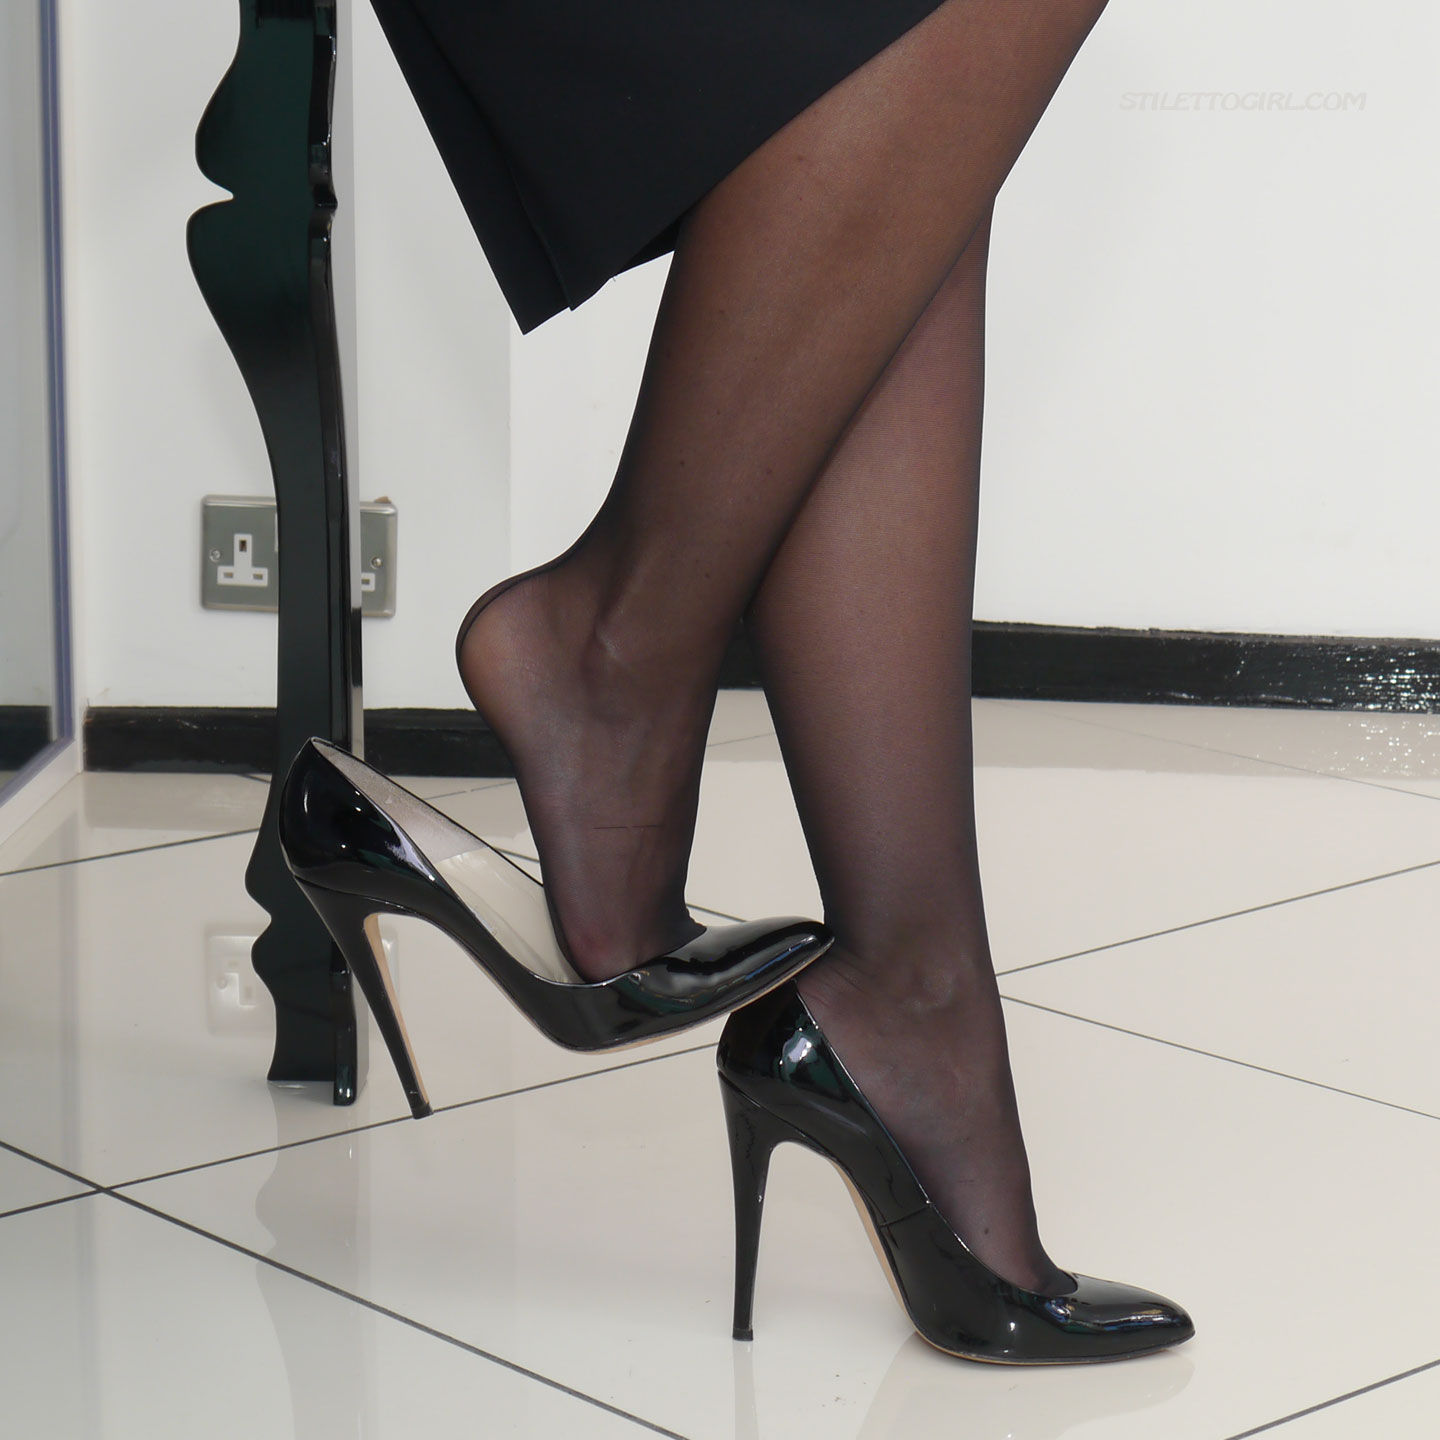 Black Pantyhose and High Heels